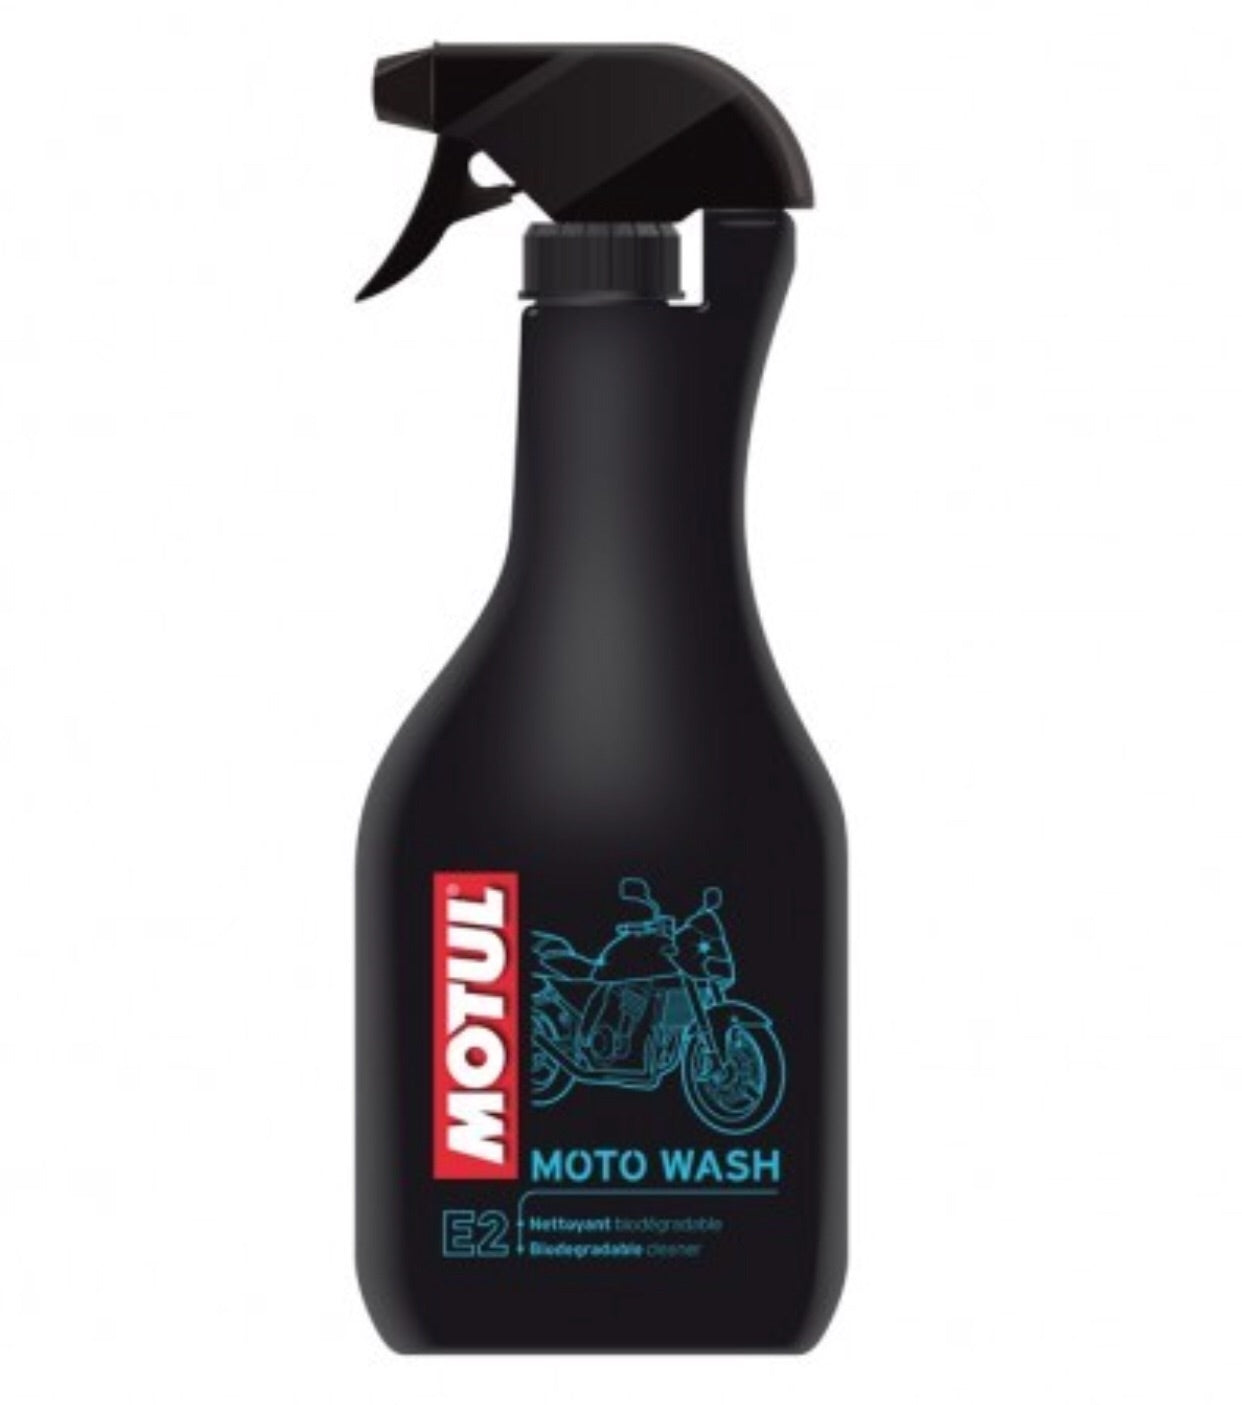 Motul E2 Moto Wash - The Brake King